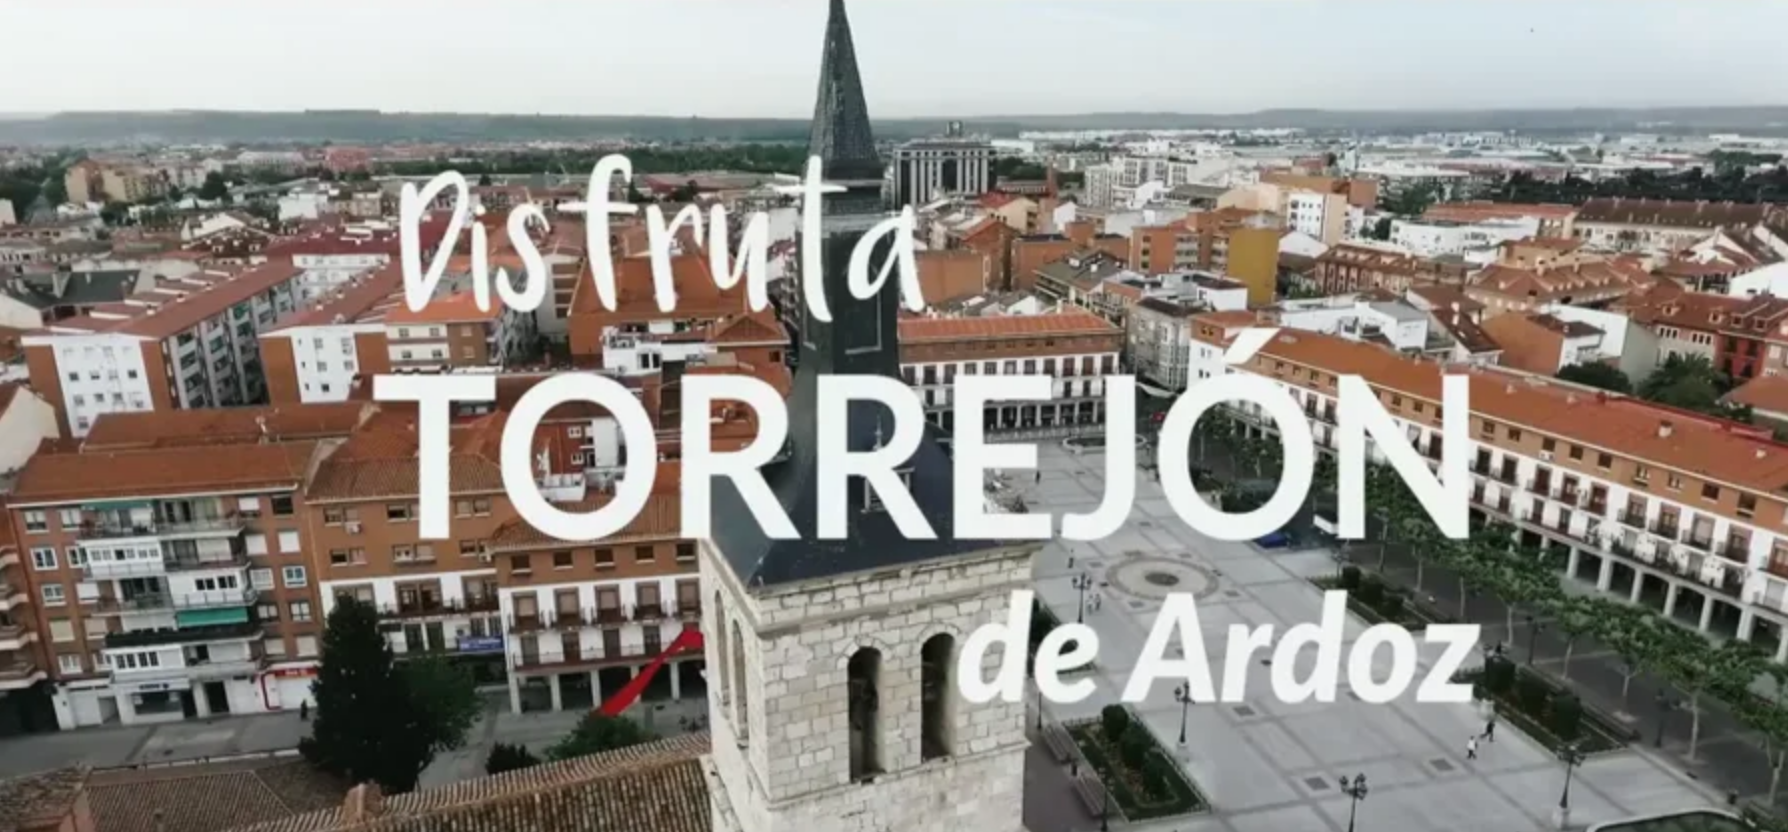 video torrejón turístico